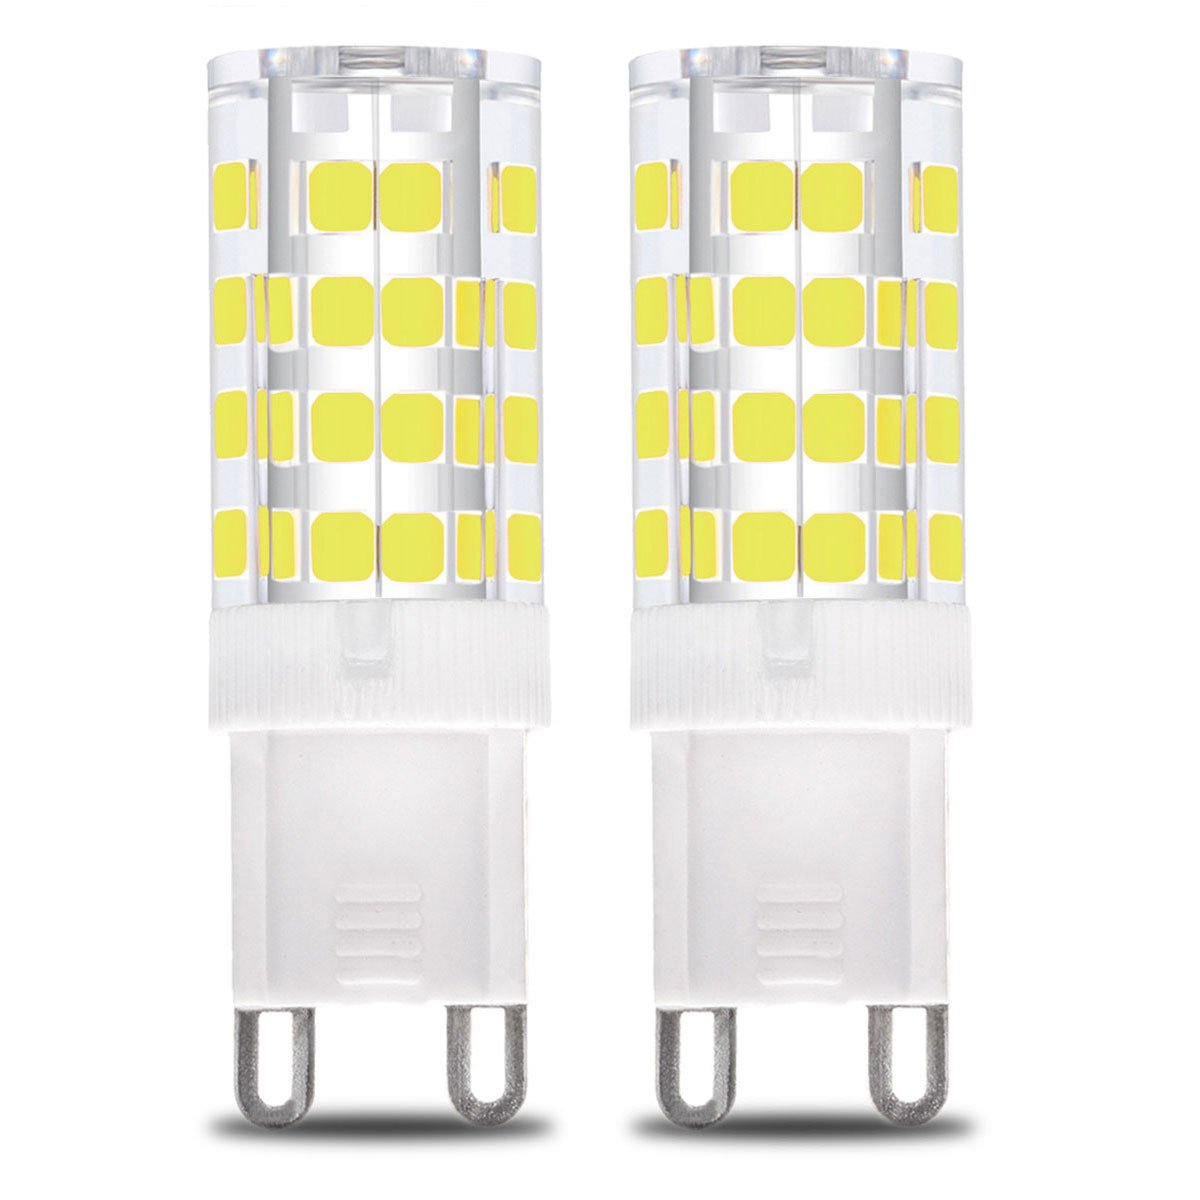 kindeep g9 led bulb 5w 400lm 40 watt halogen bulbs equivalent daylight ebay. Black Bedroom Furniture Sets. Home Design Ideas